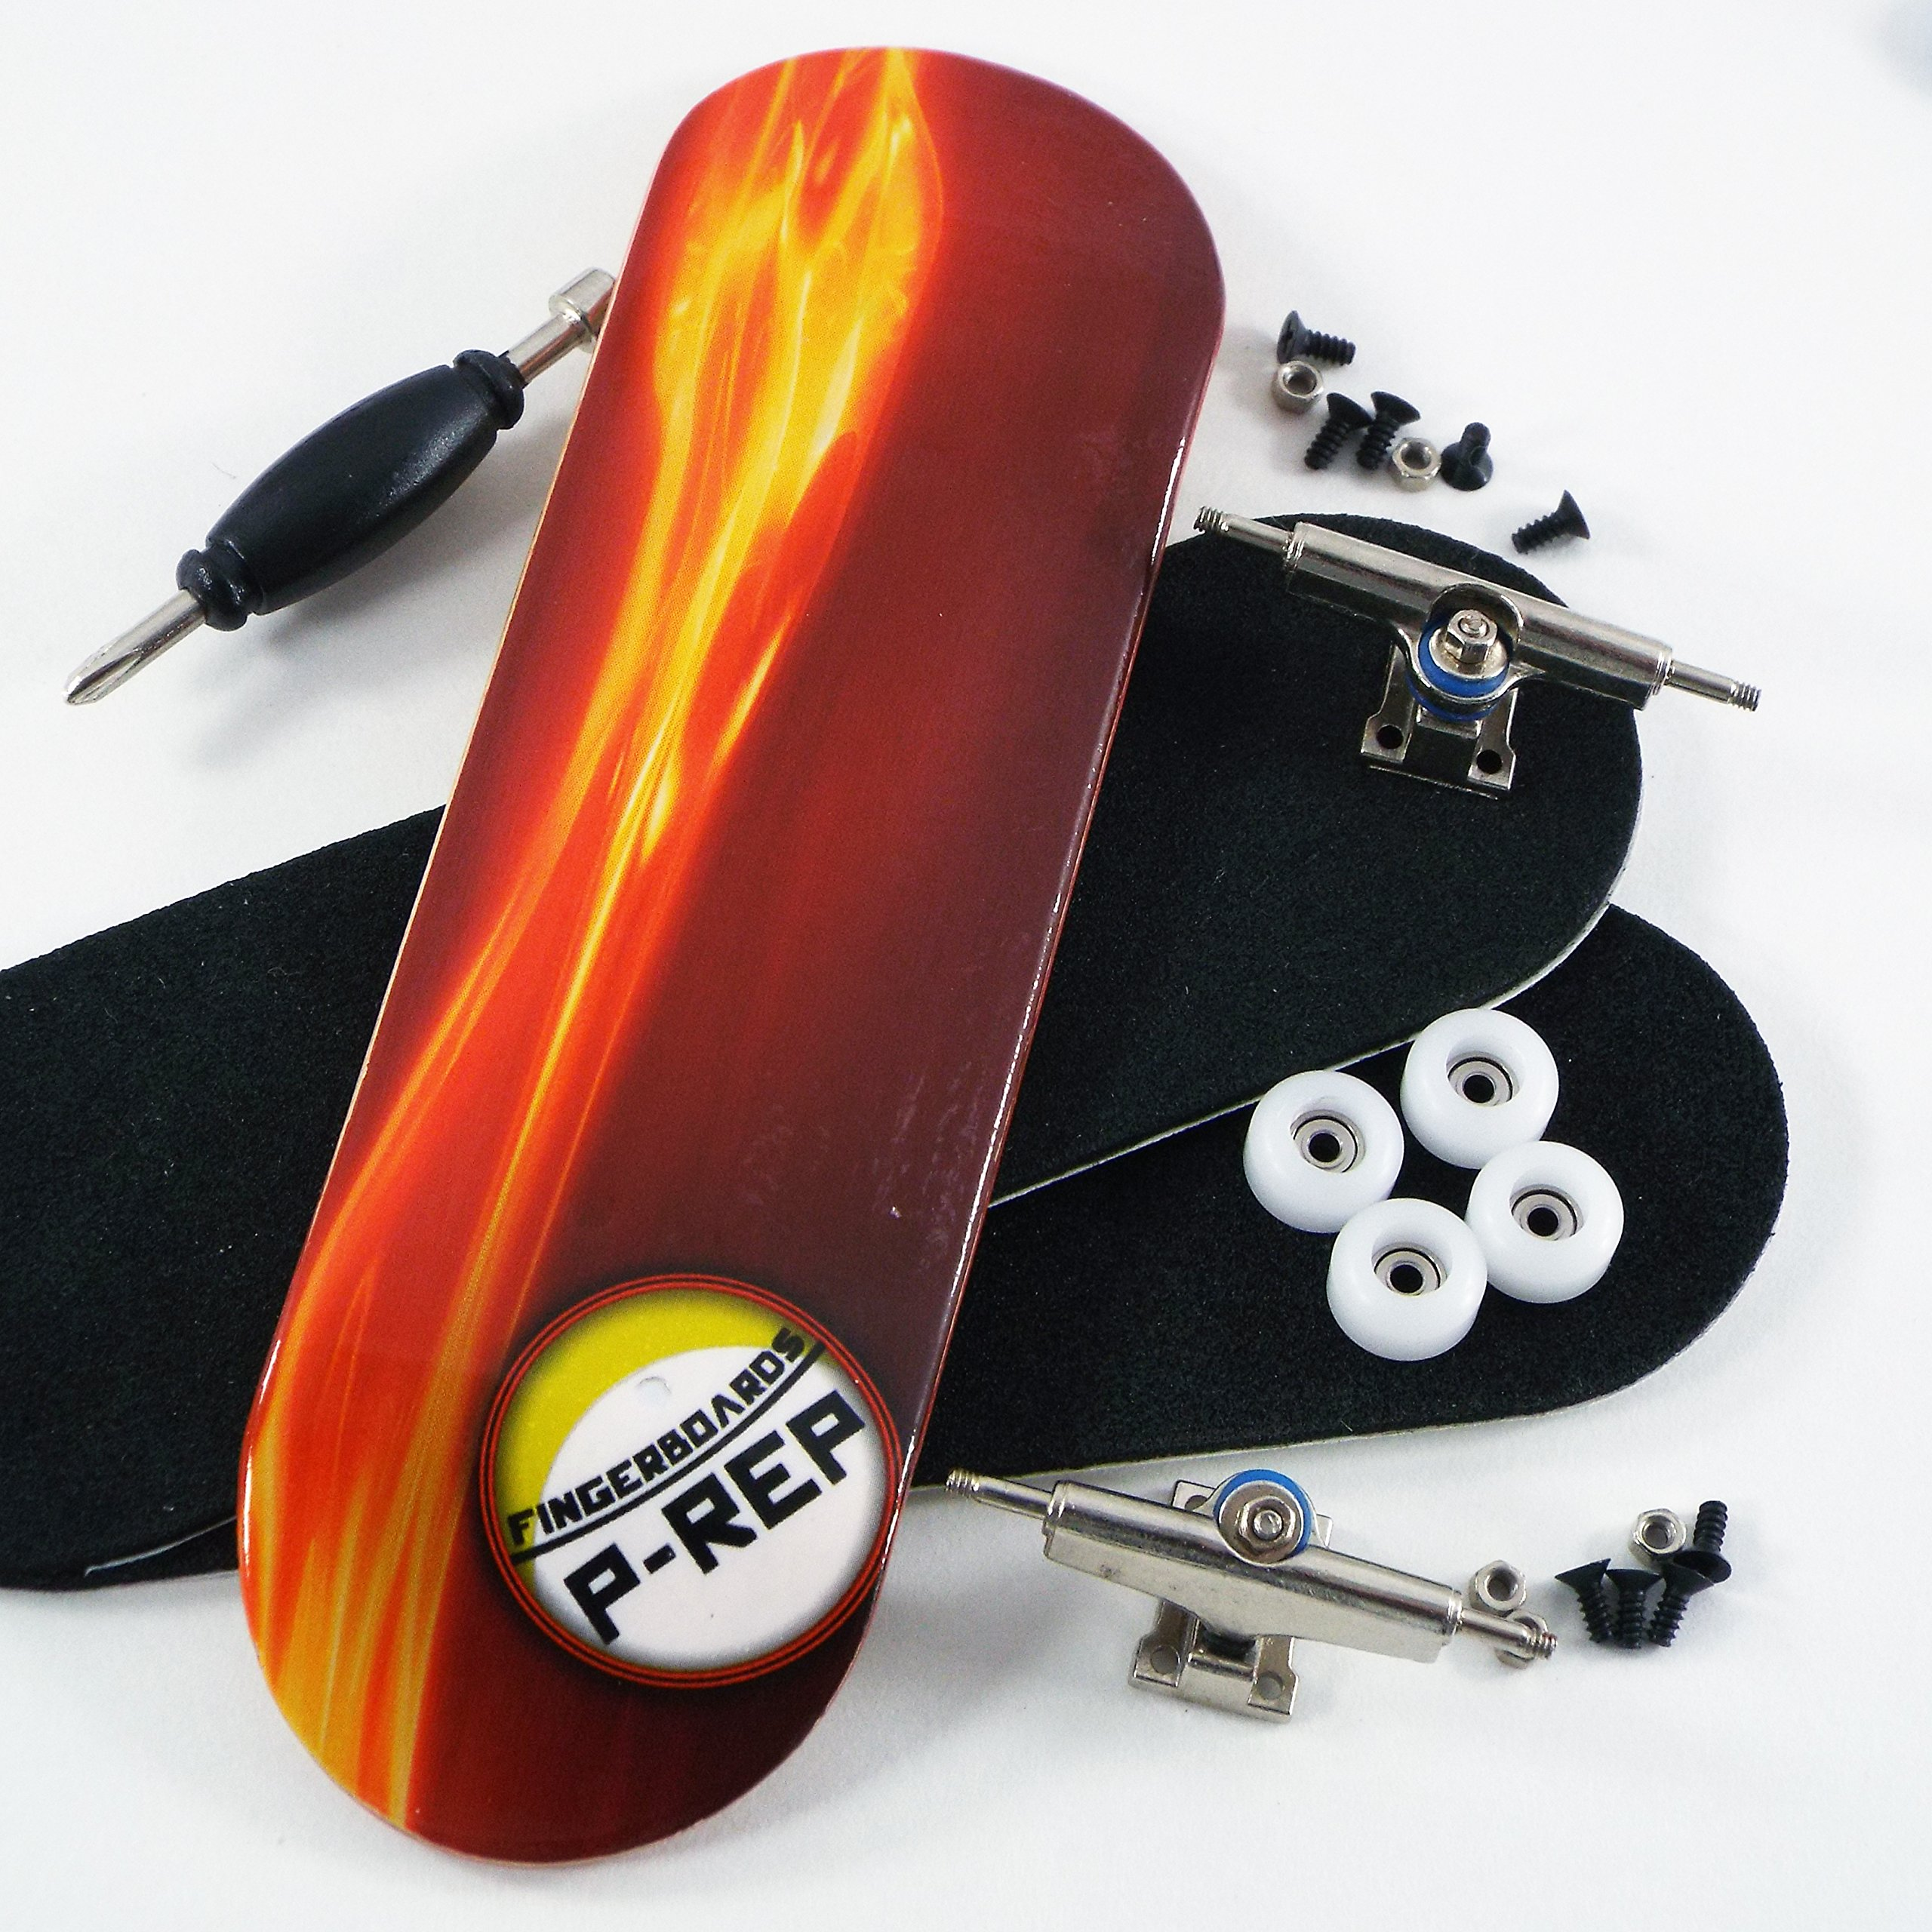 P-Rep Fired Up 30mm Graphic Complete Wooden Fingerboard w CNC Lathed Bearing Wheels by Peoples Republic